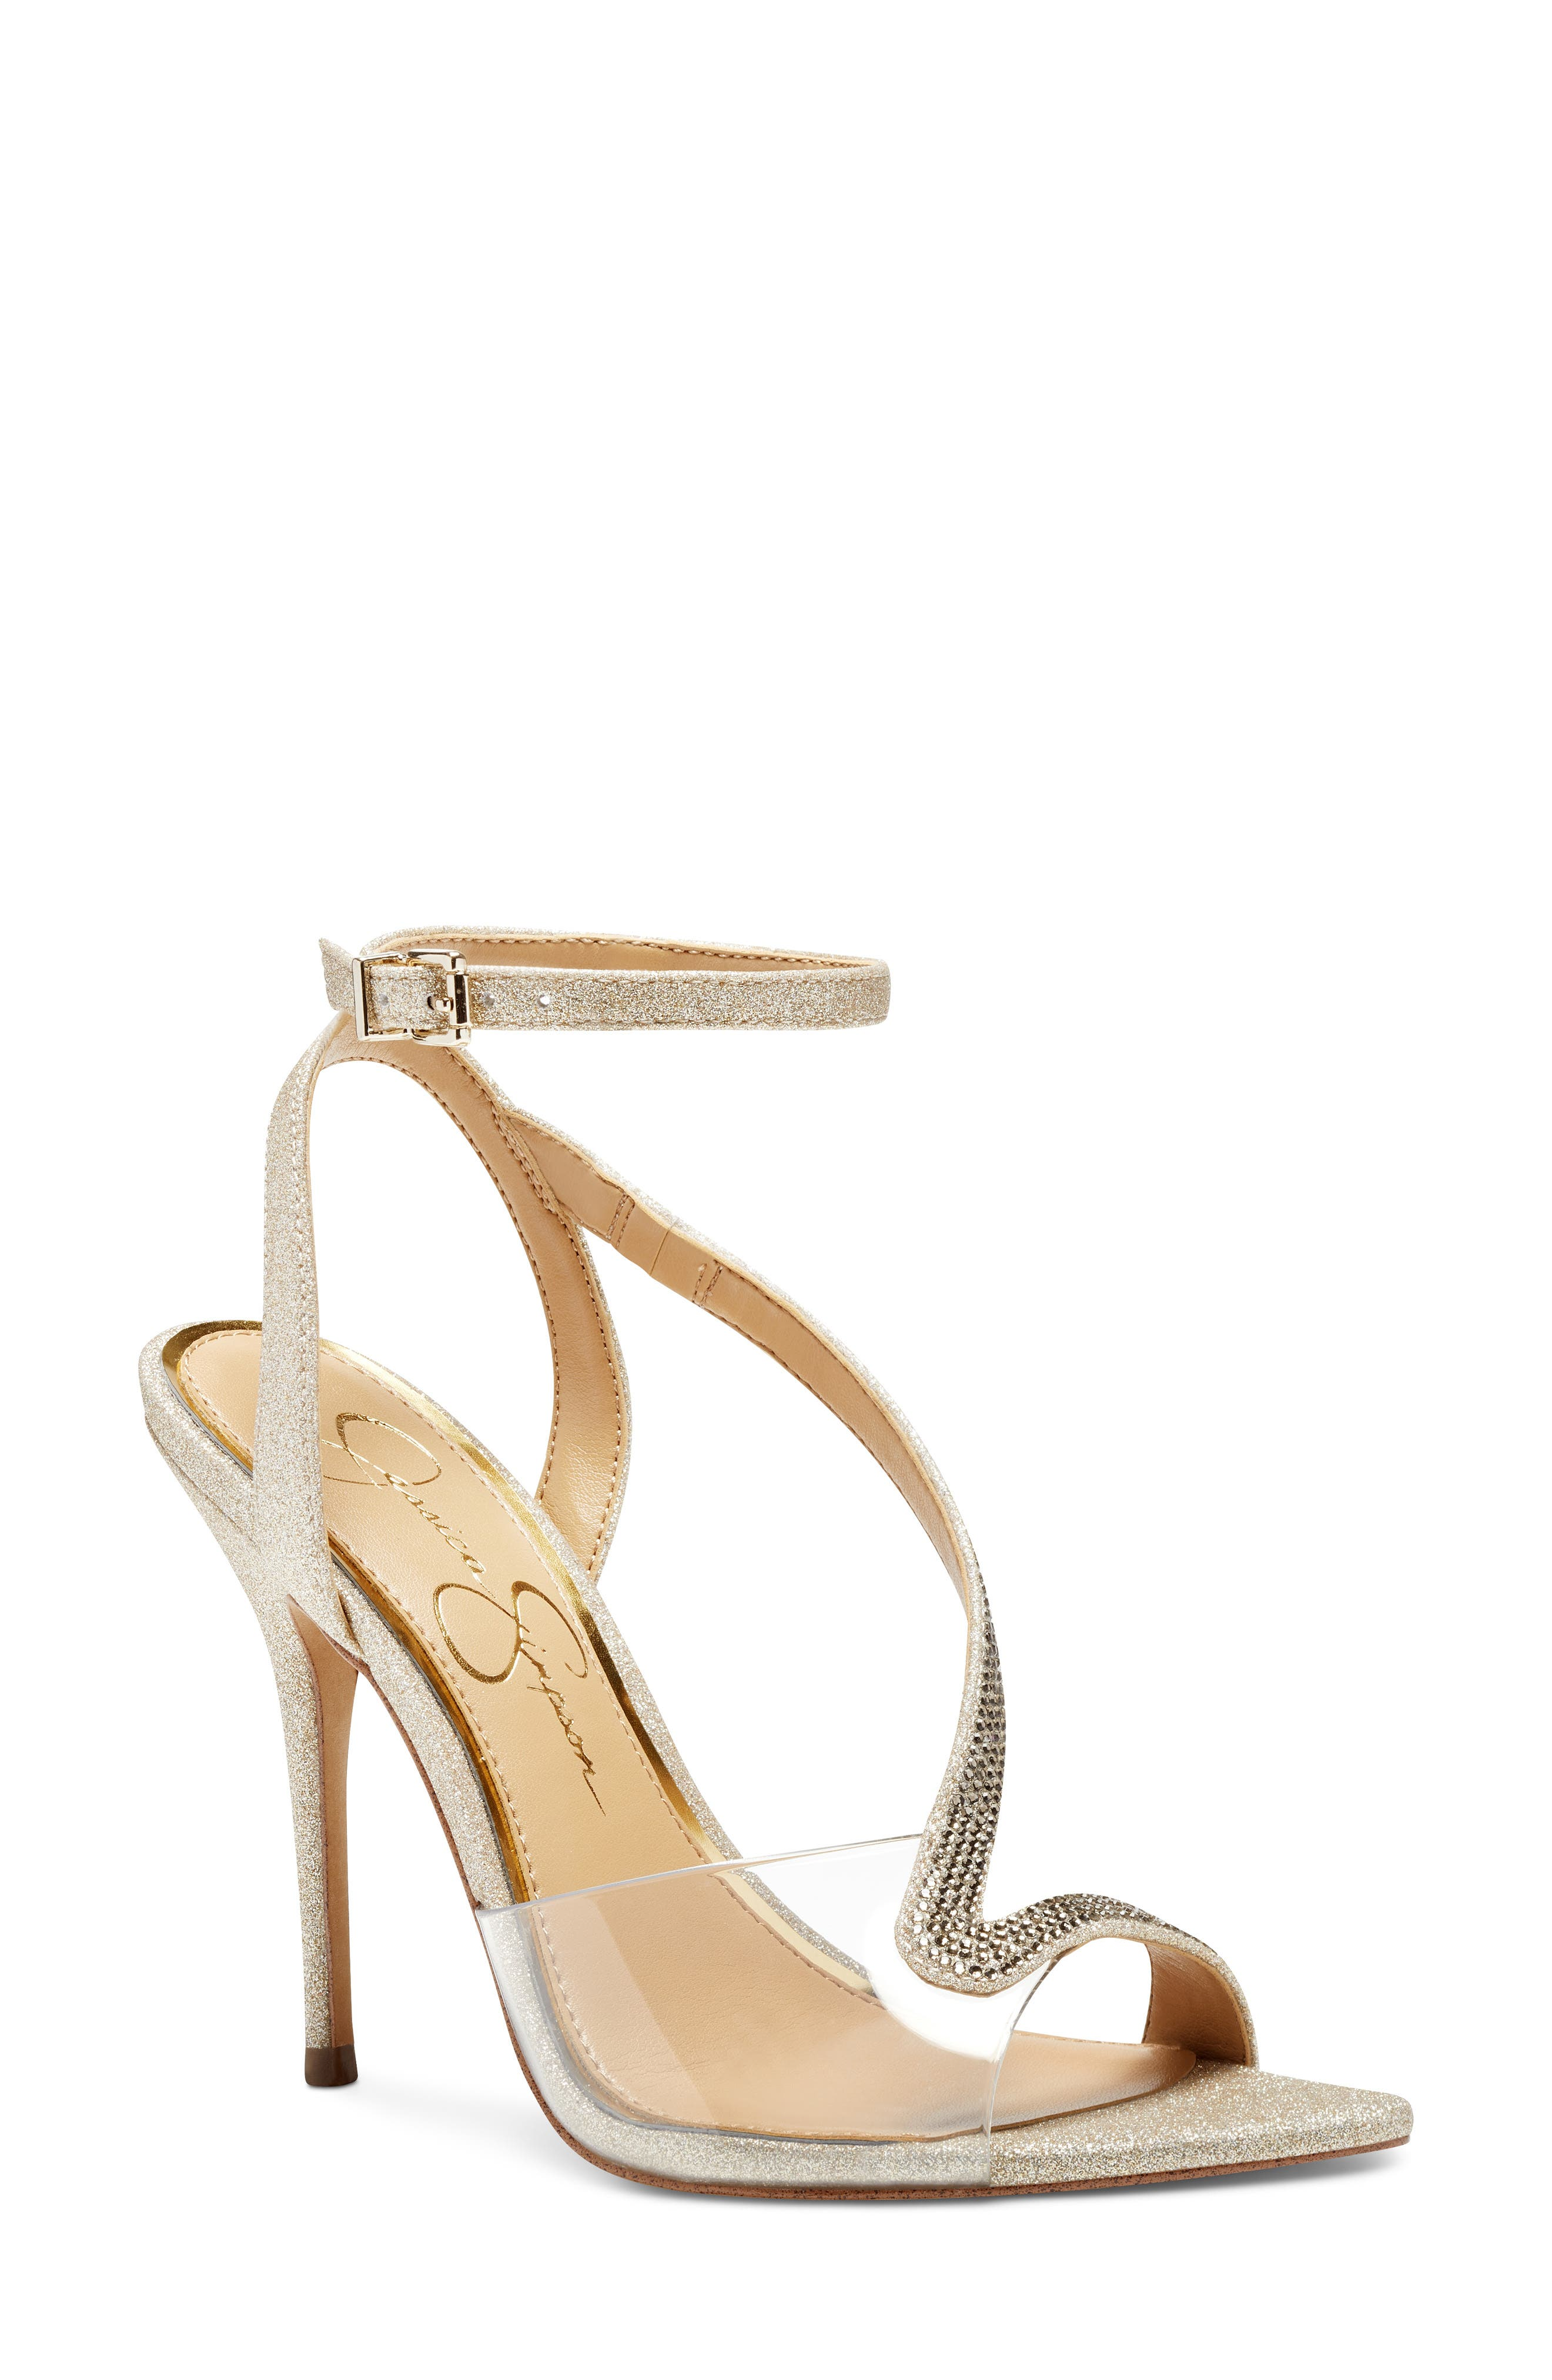 A transparent panel creates a dramatic illusion effect on a stiletto sandal topped with shimmery, asymmetrical straps. Style Name: Jessica Simpson Whitley Ankle Strap Sandal (Women). Style Number: 6101945. Available in stores.